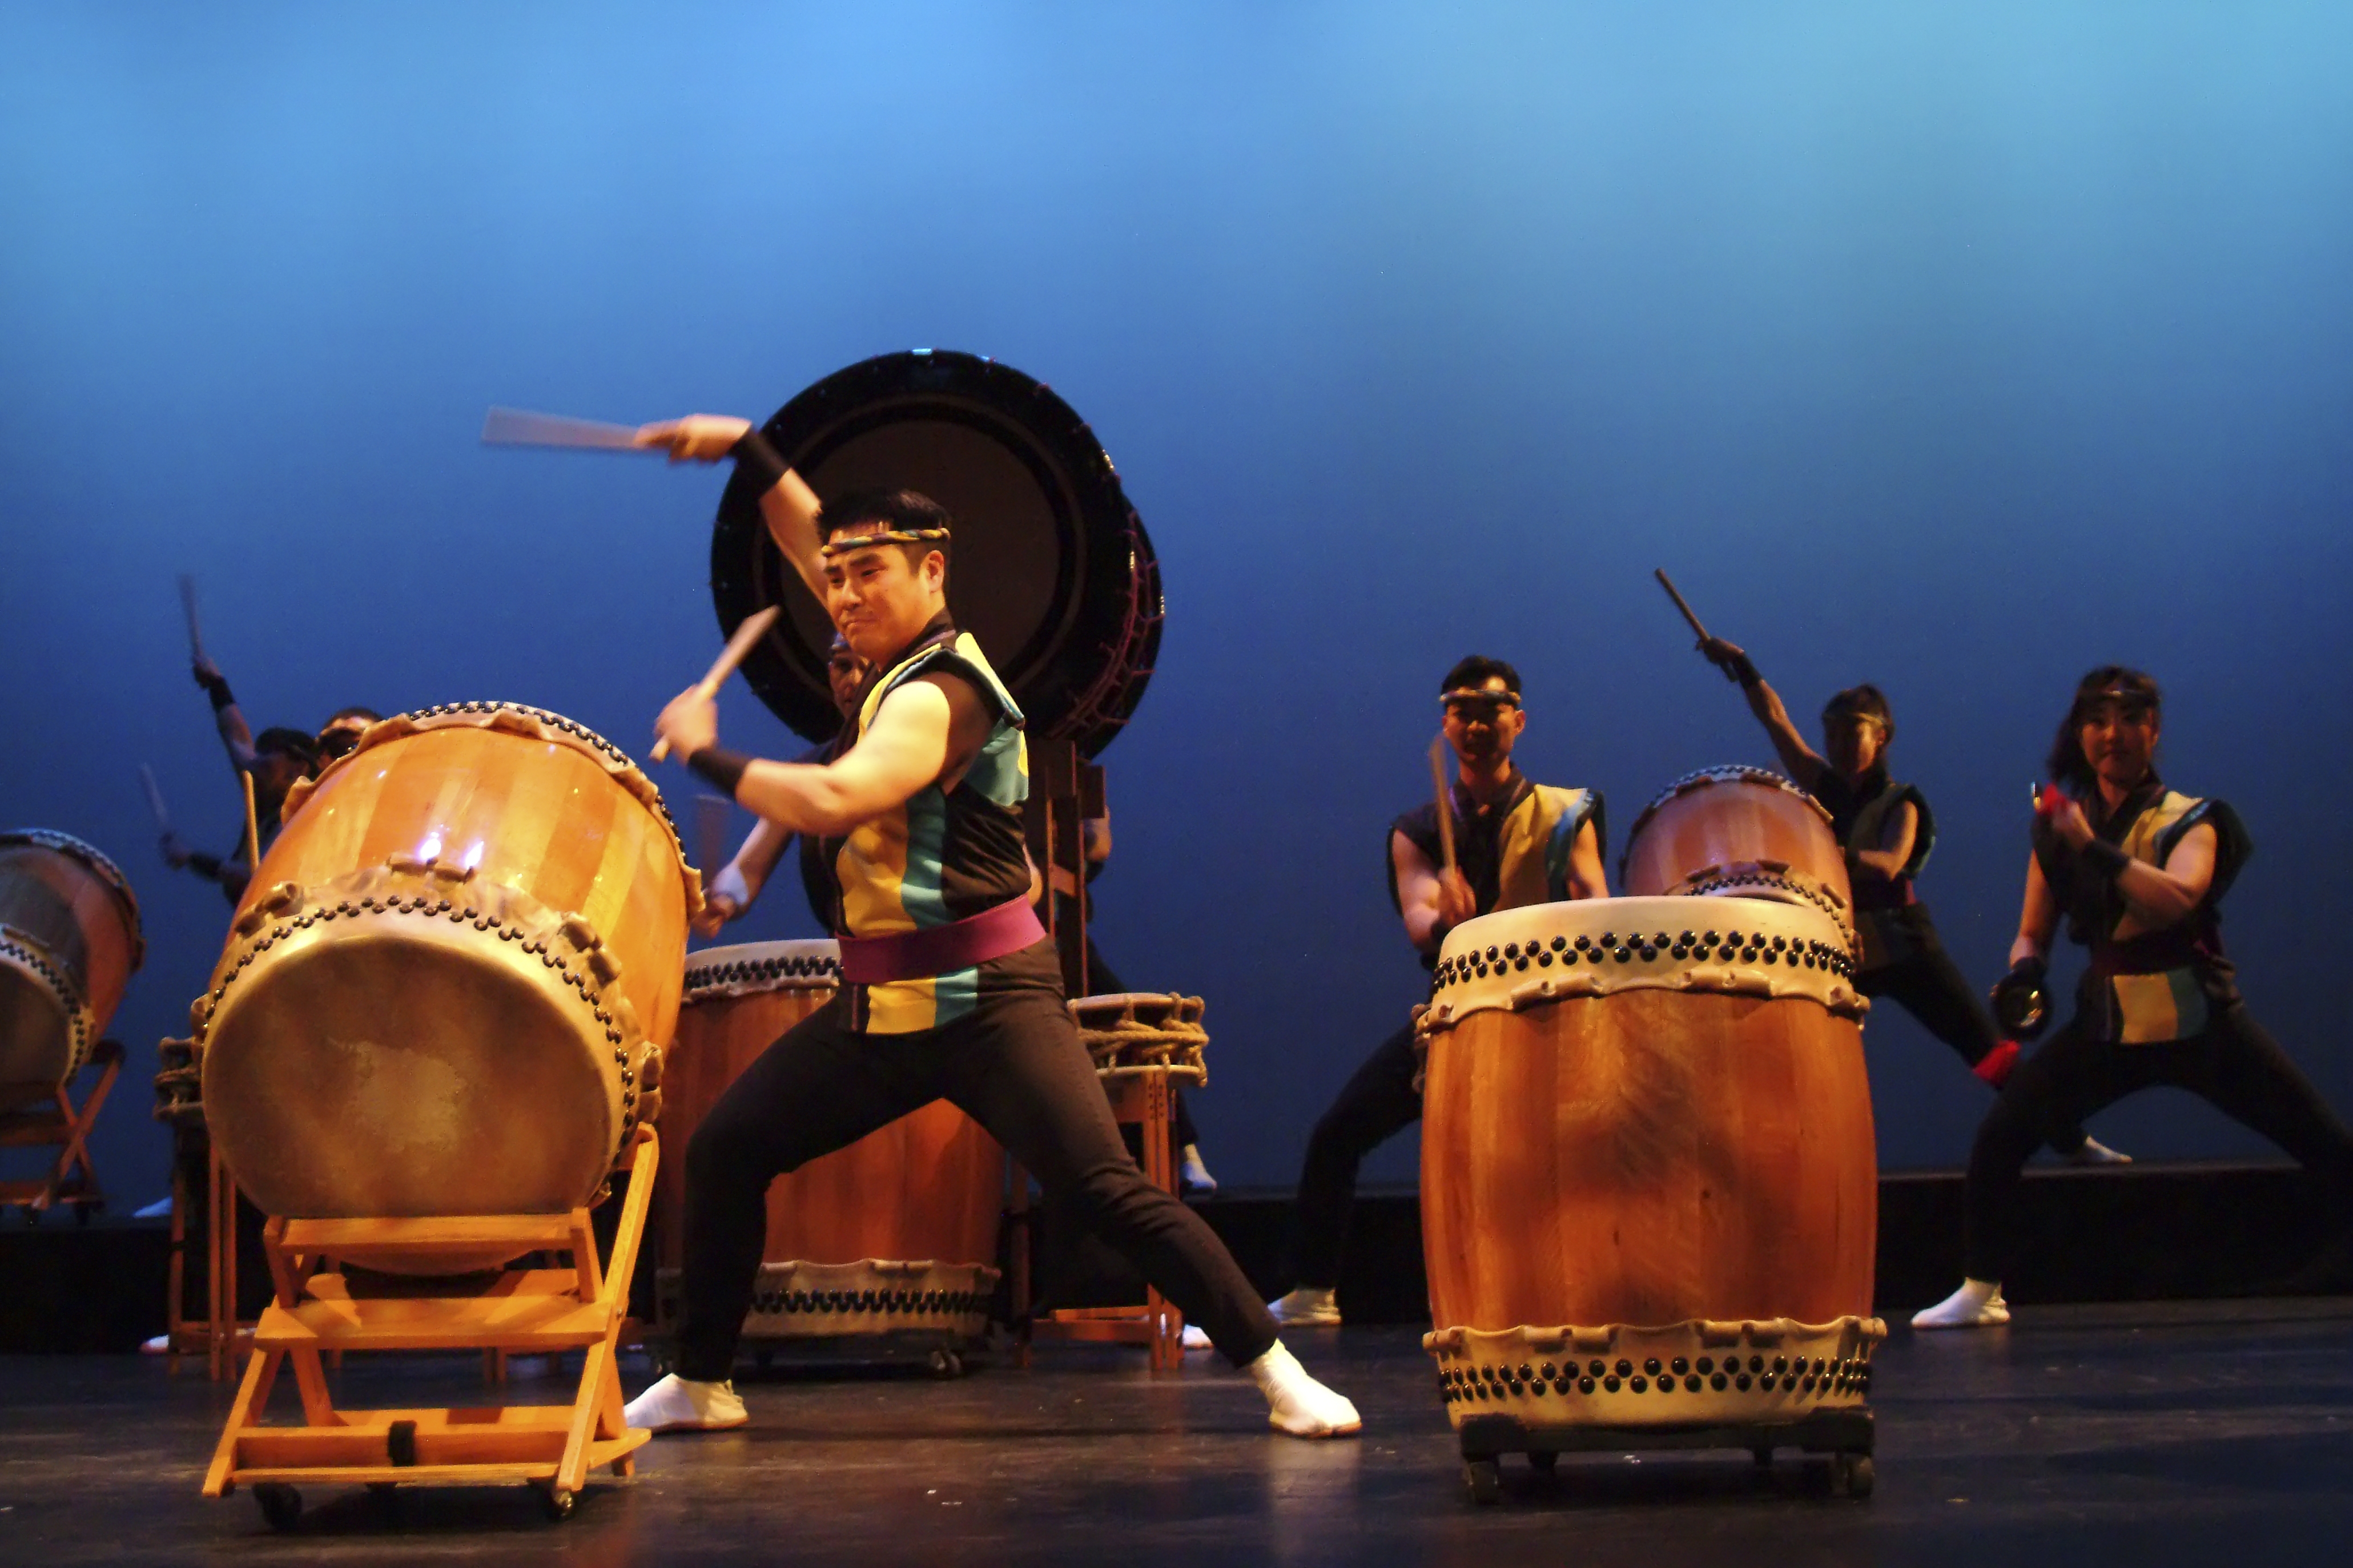 A group of performers playing on japanese taiko drums